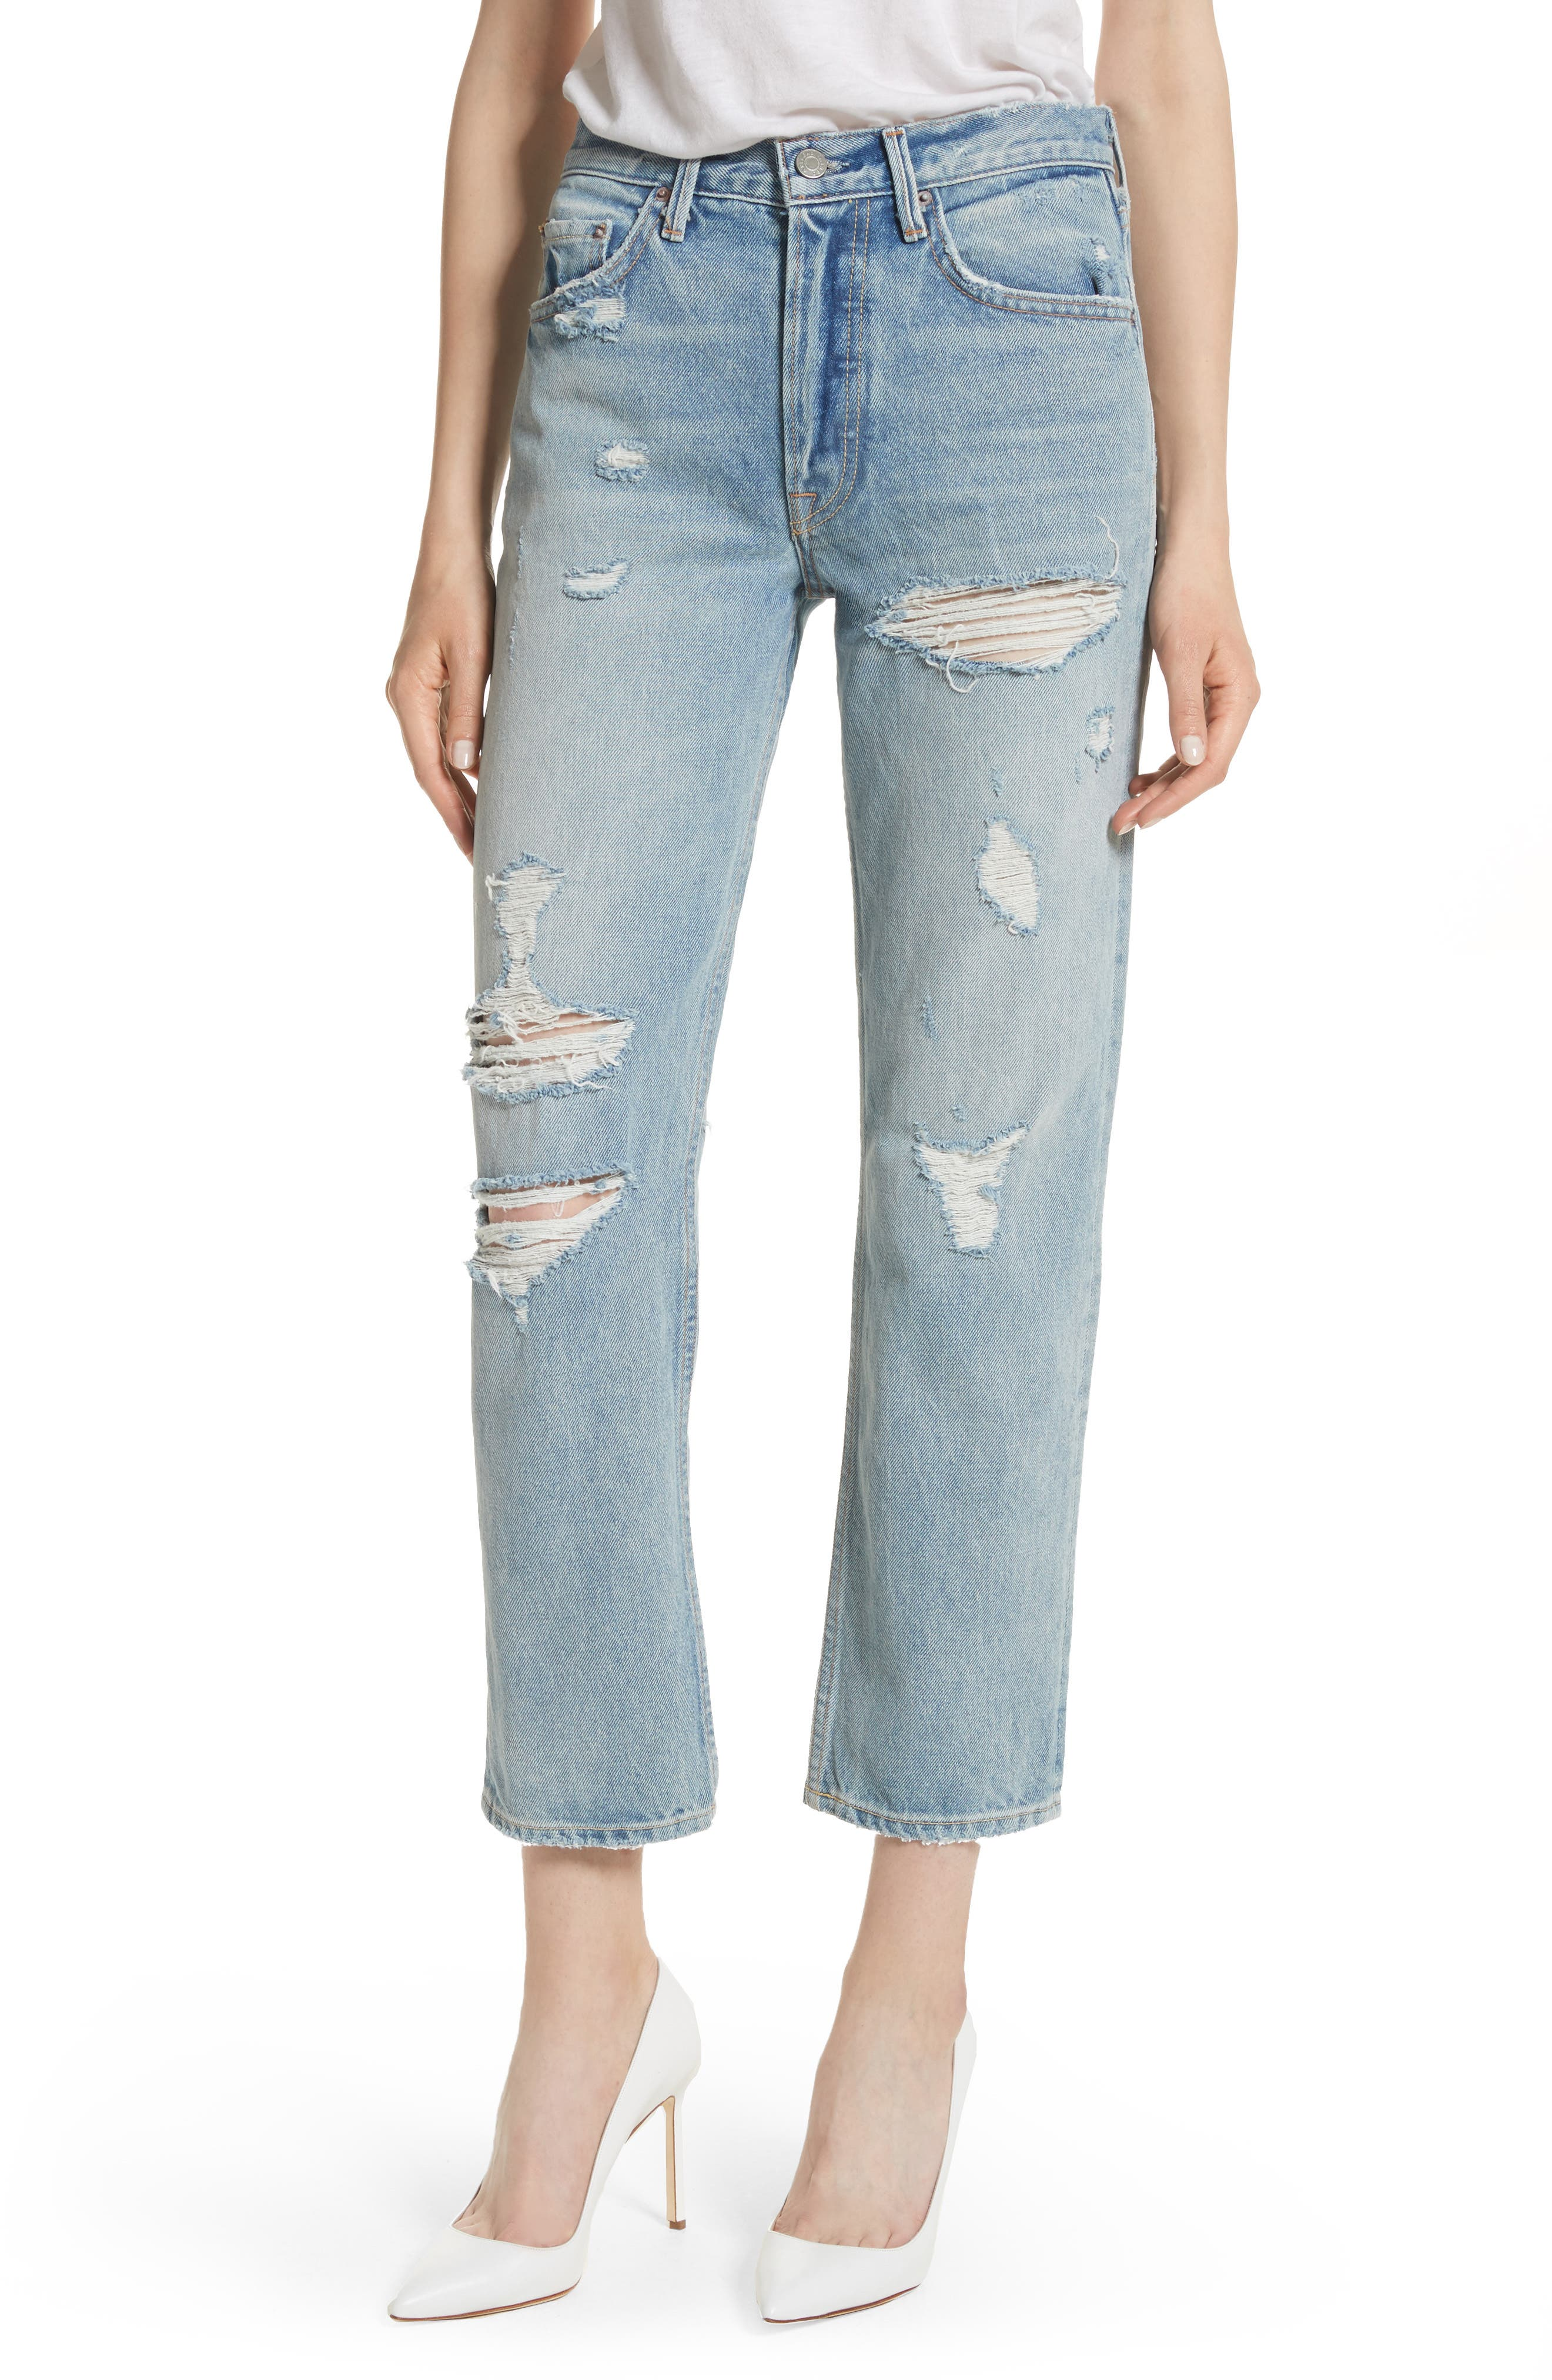 Helena Ripped Rigid High Waist Straight Jeans,                         Main,                         color, 491